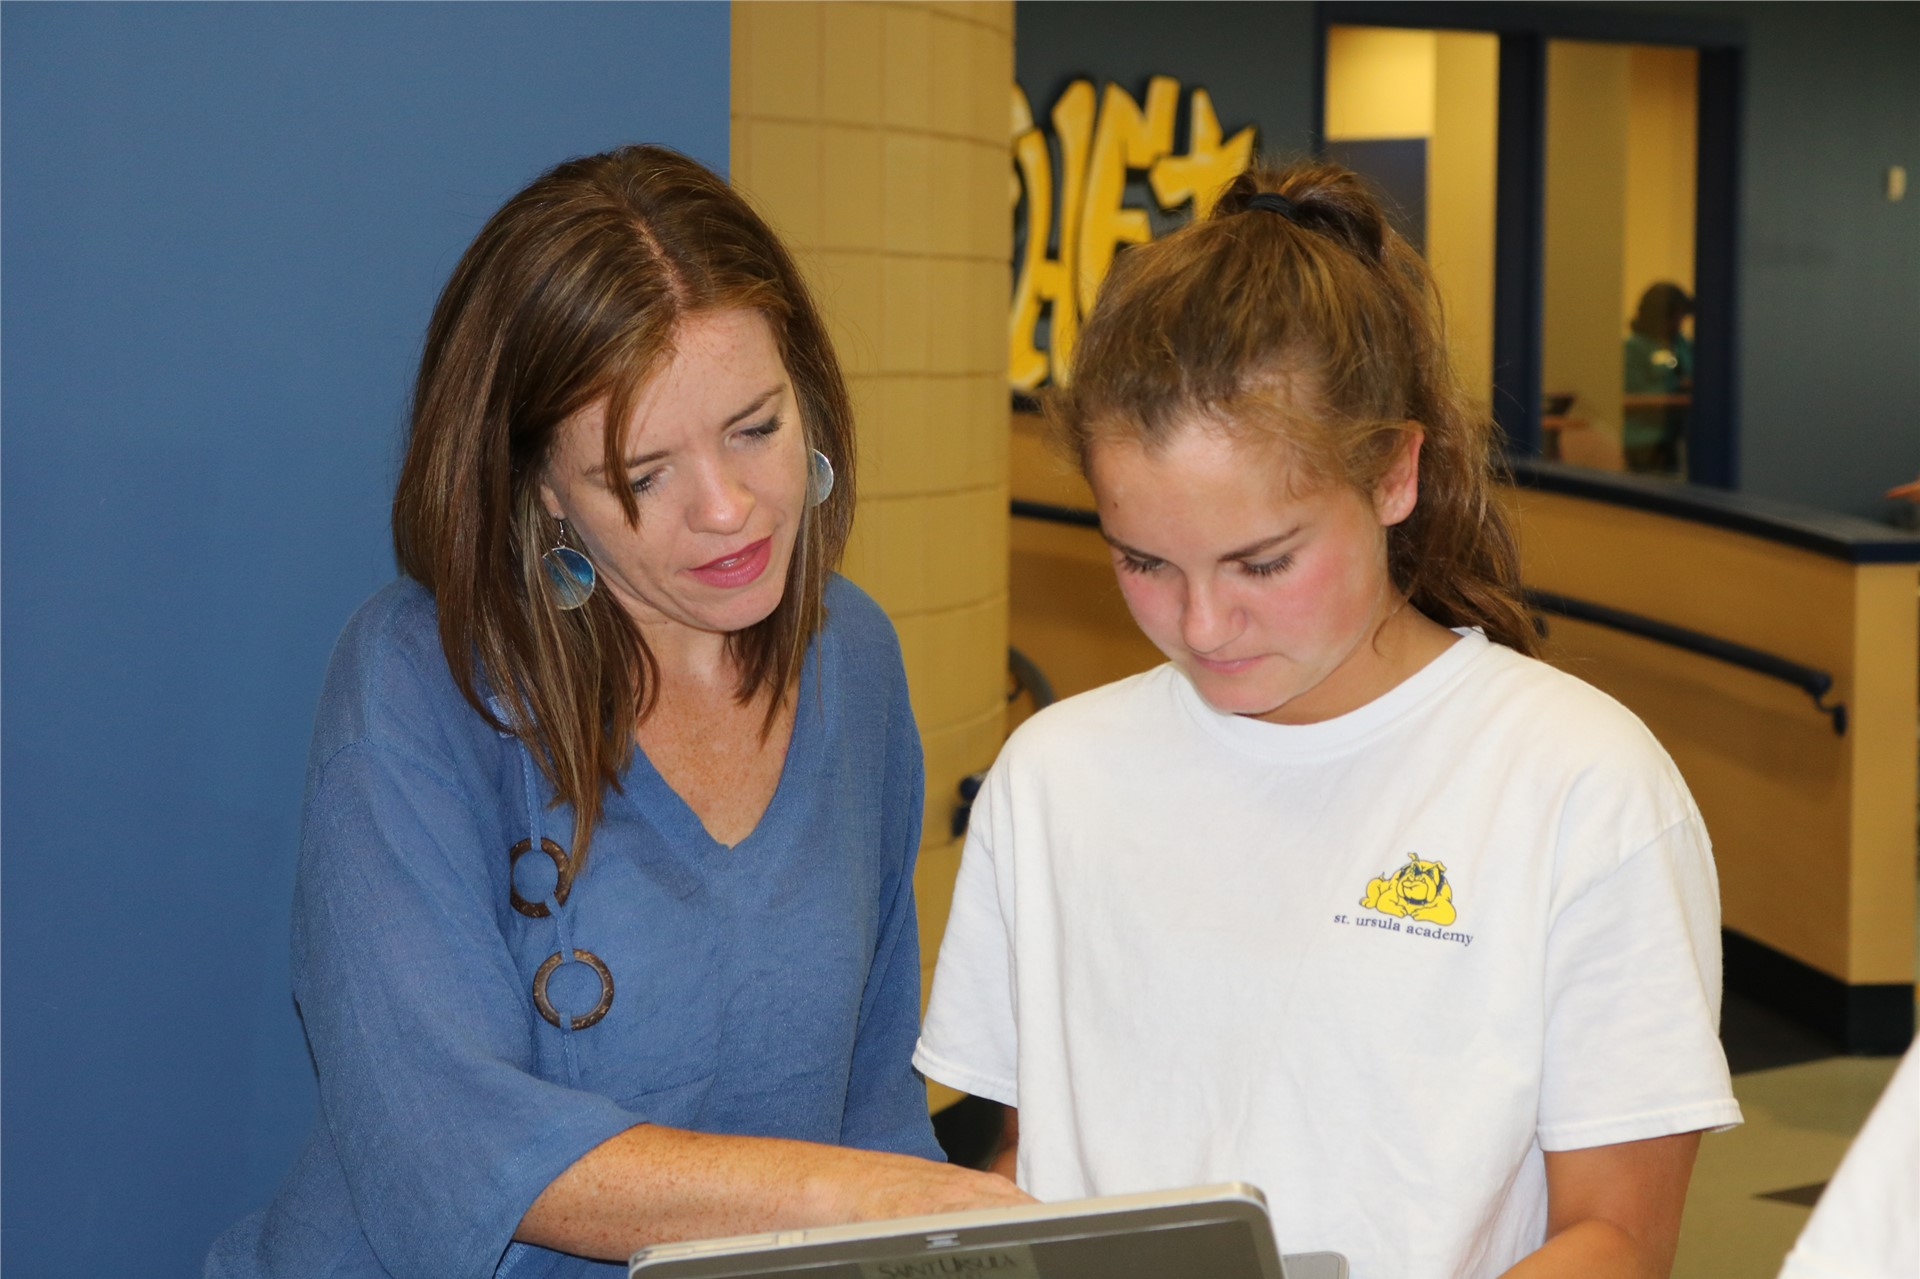 SUA Counselors helped seniors with college applications in a day long Application Marathon!